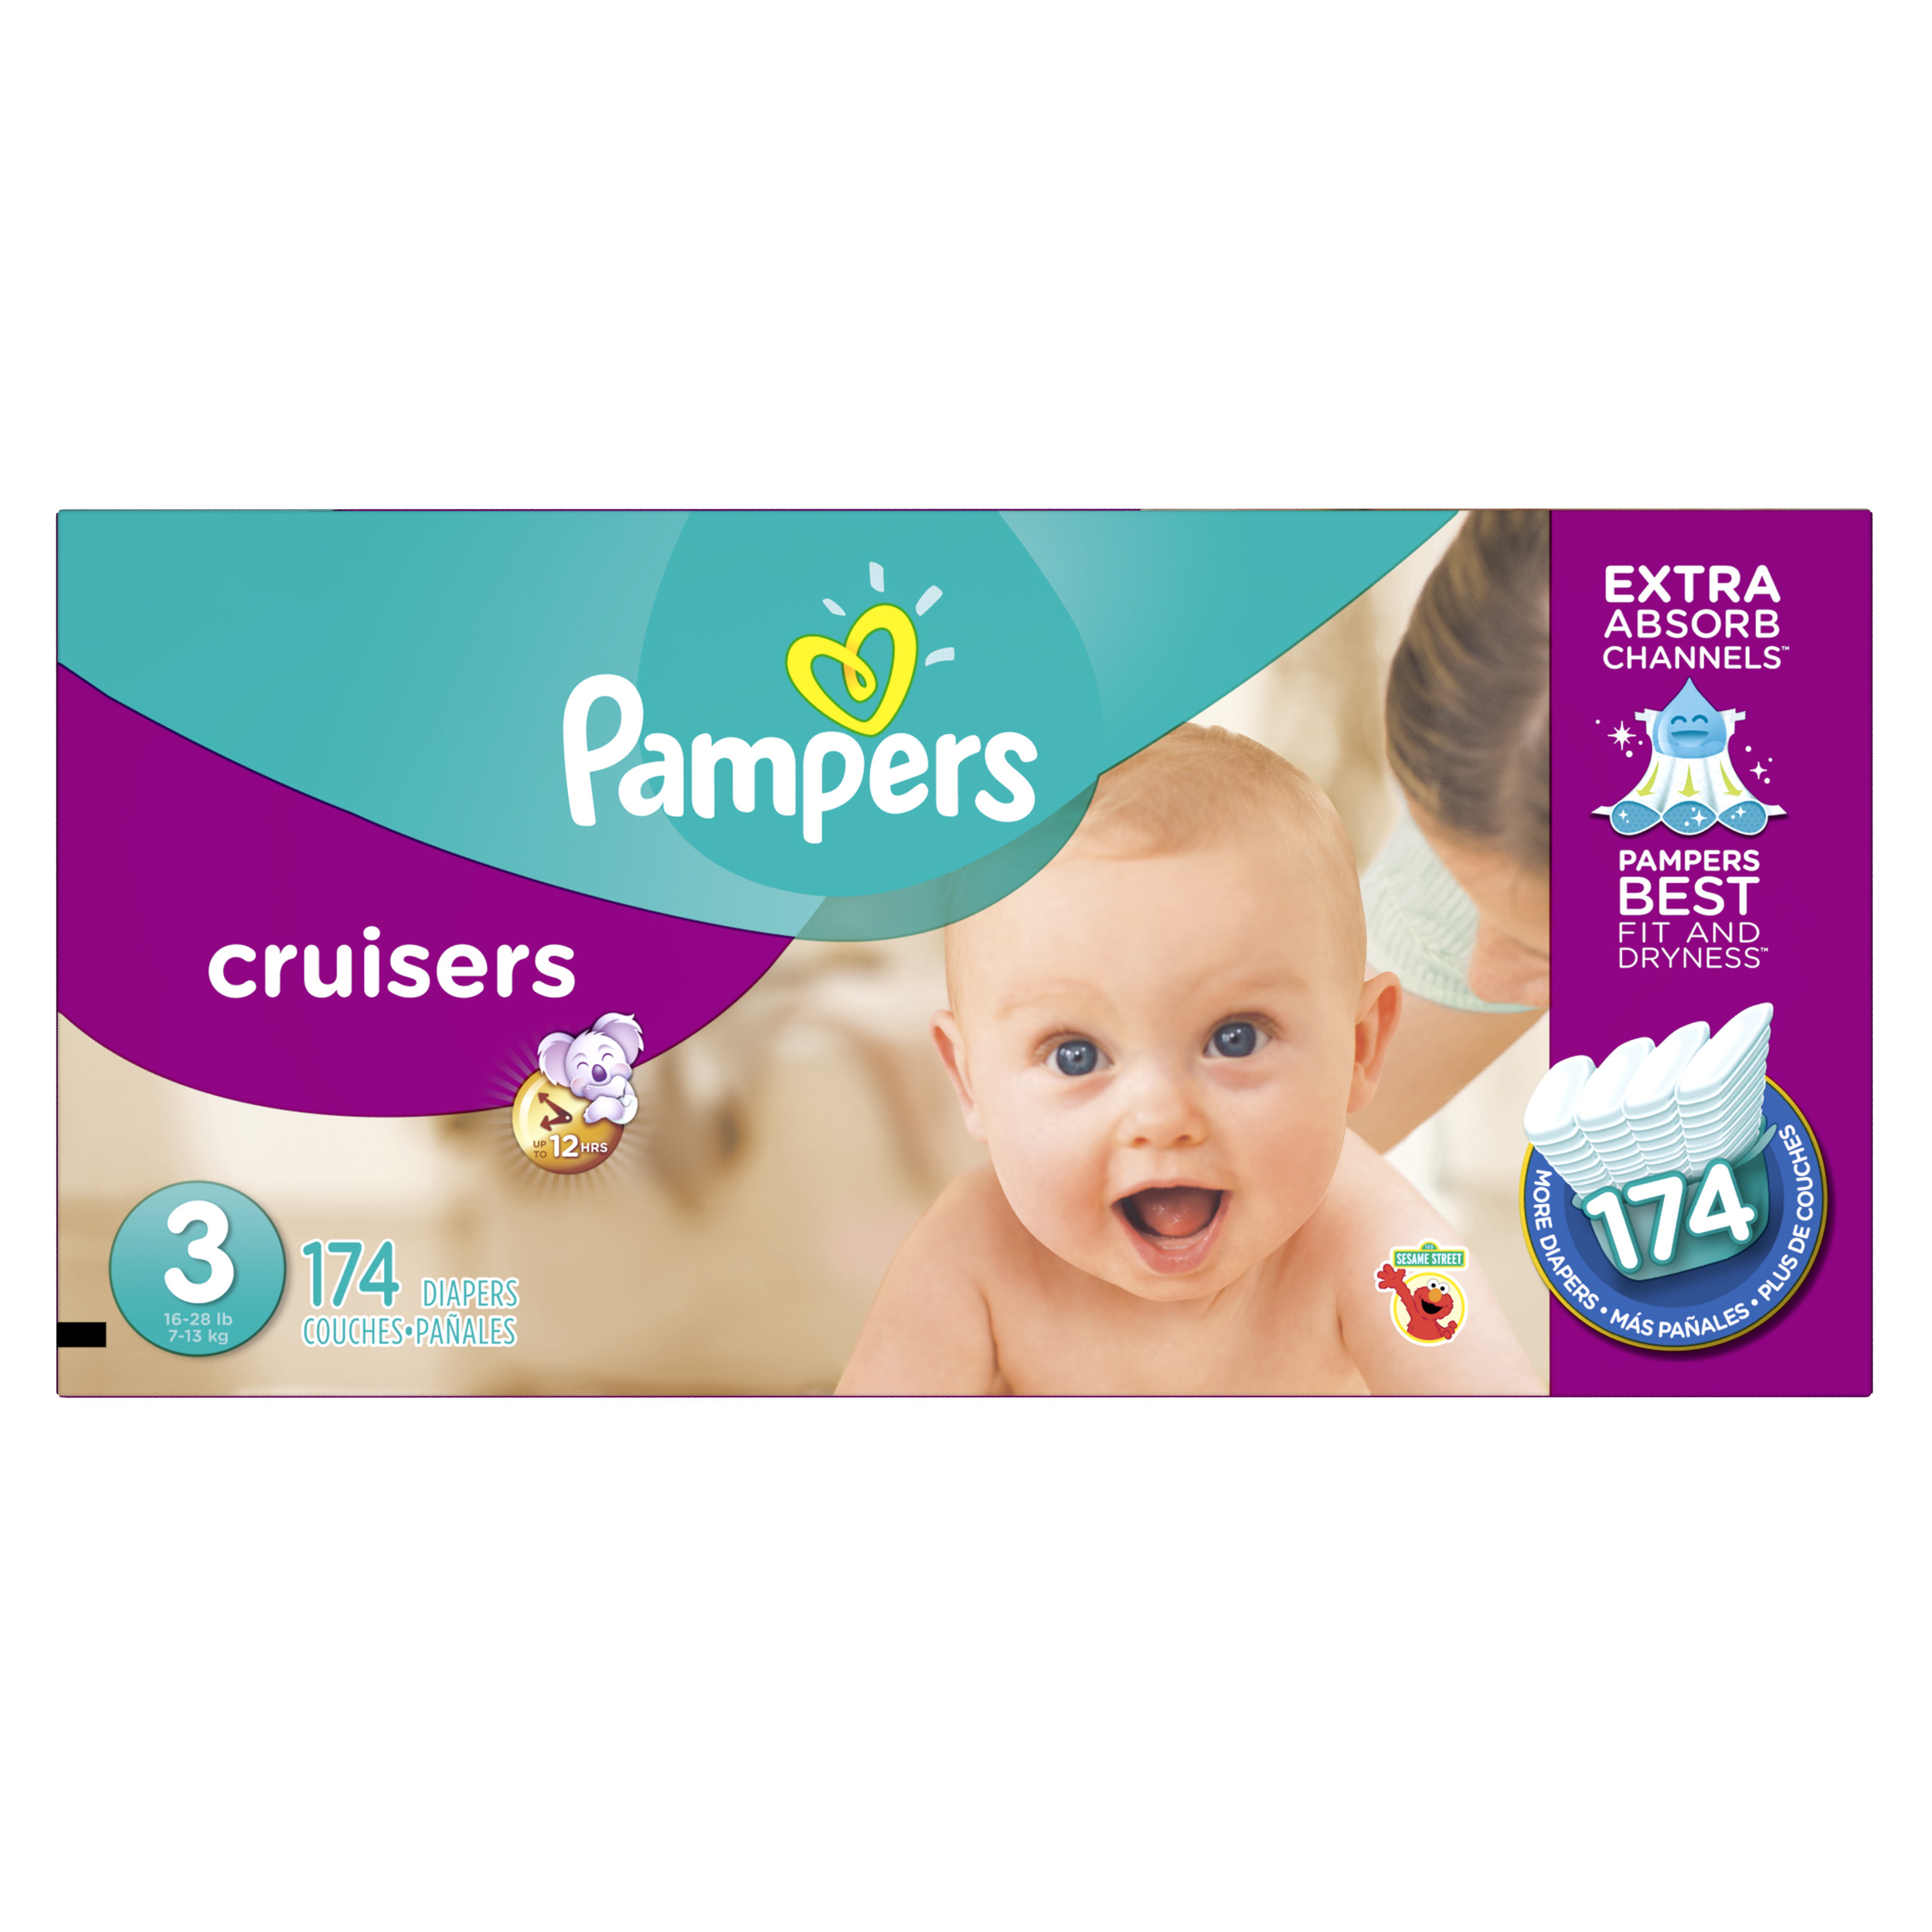 Pampers Cruisers Diapers Size 3 174 count by Pampers